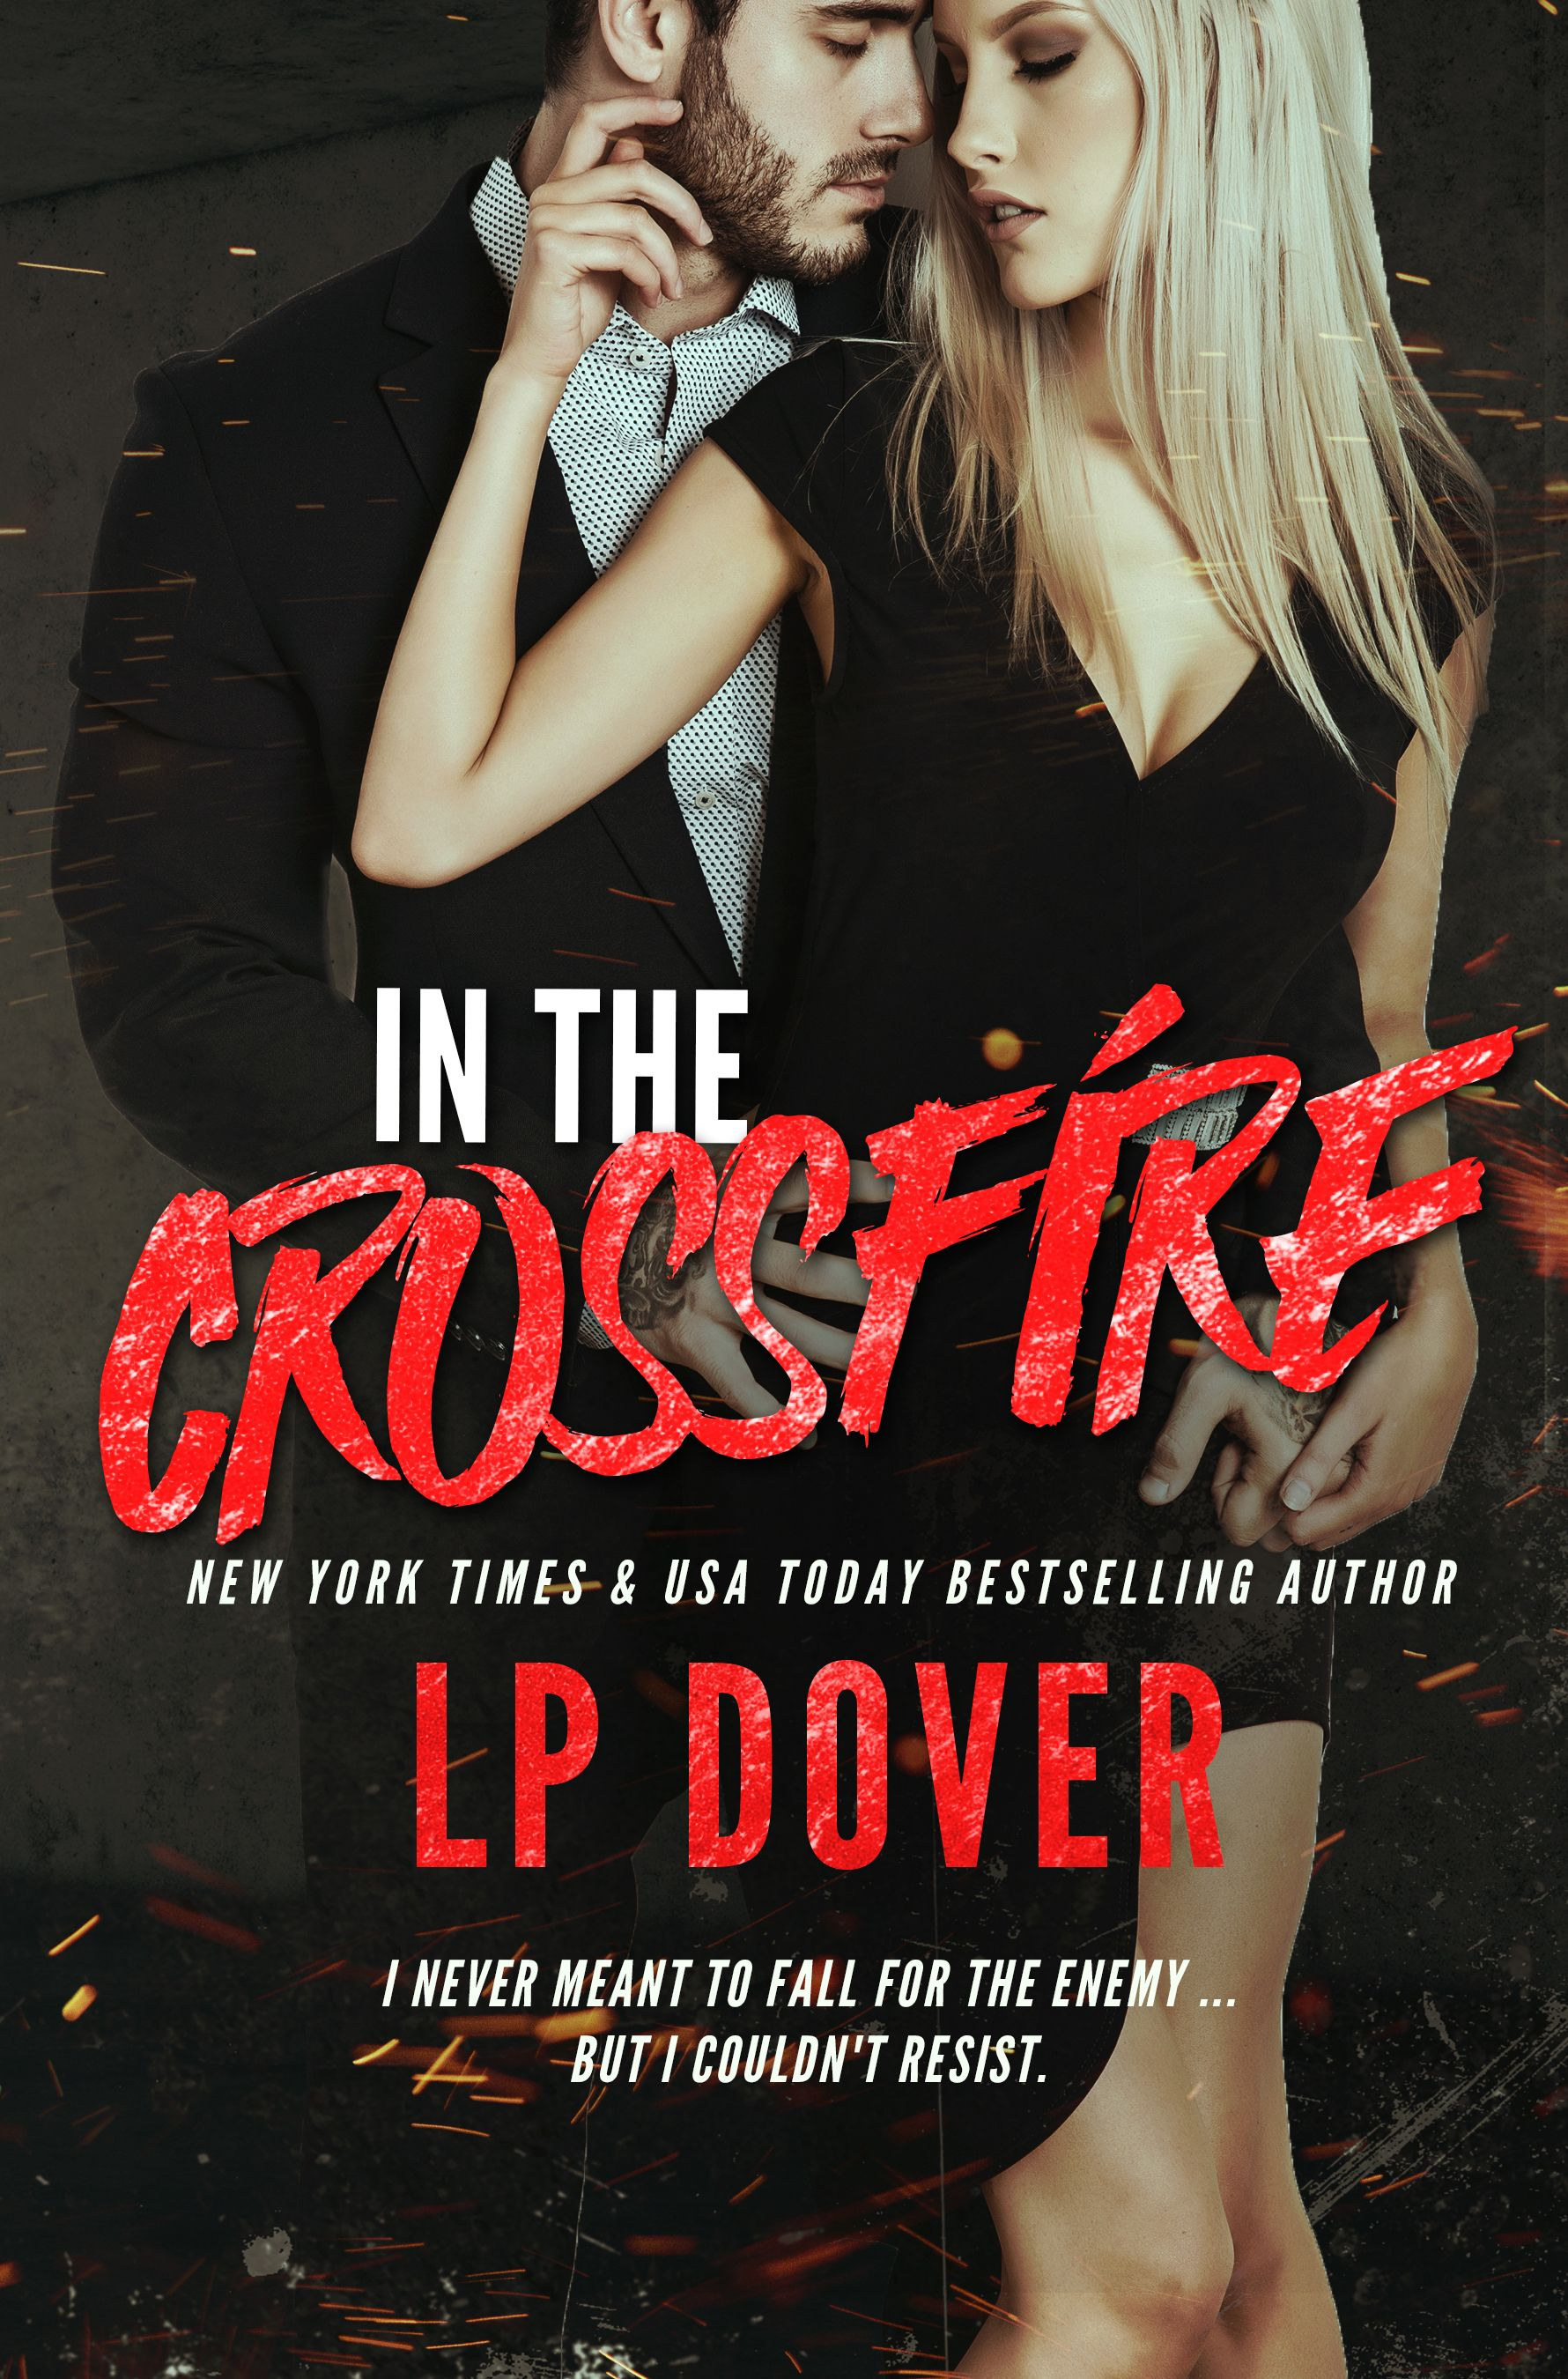 In the Crossfire by LPDover is available NOW! Amazon